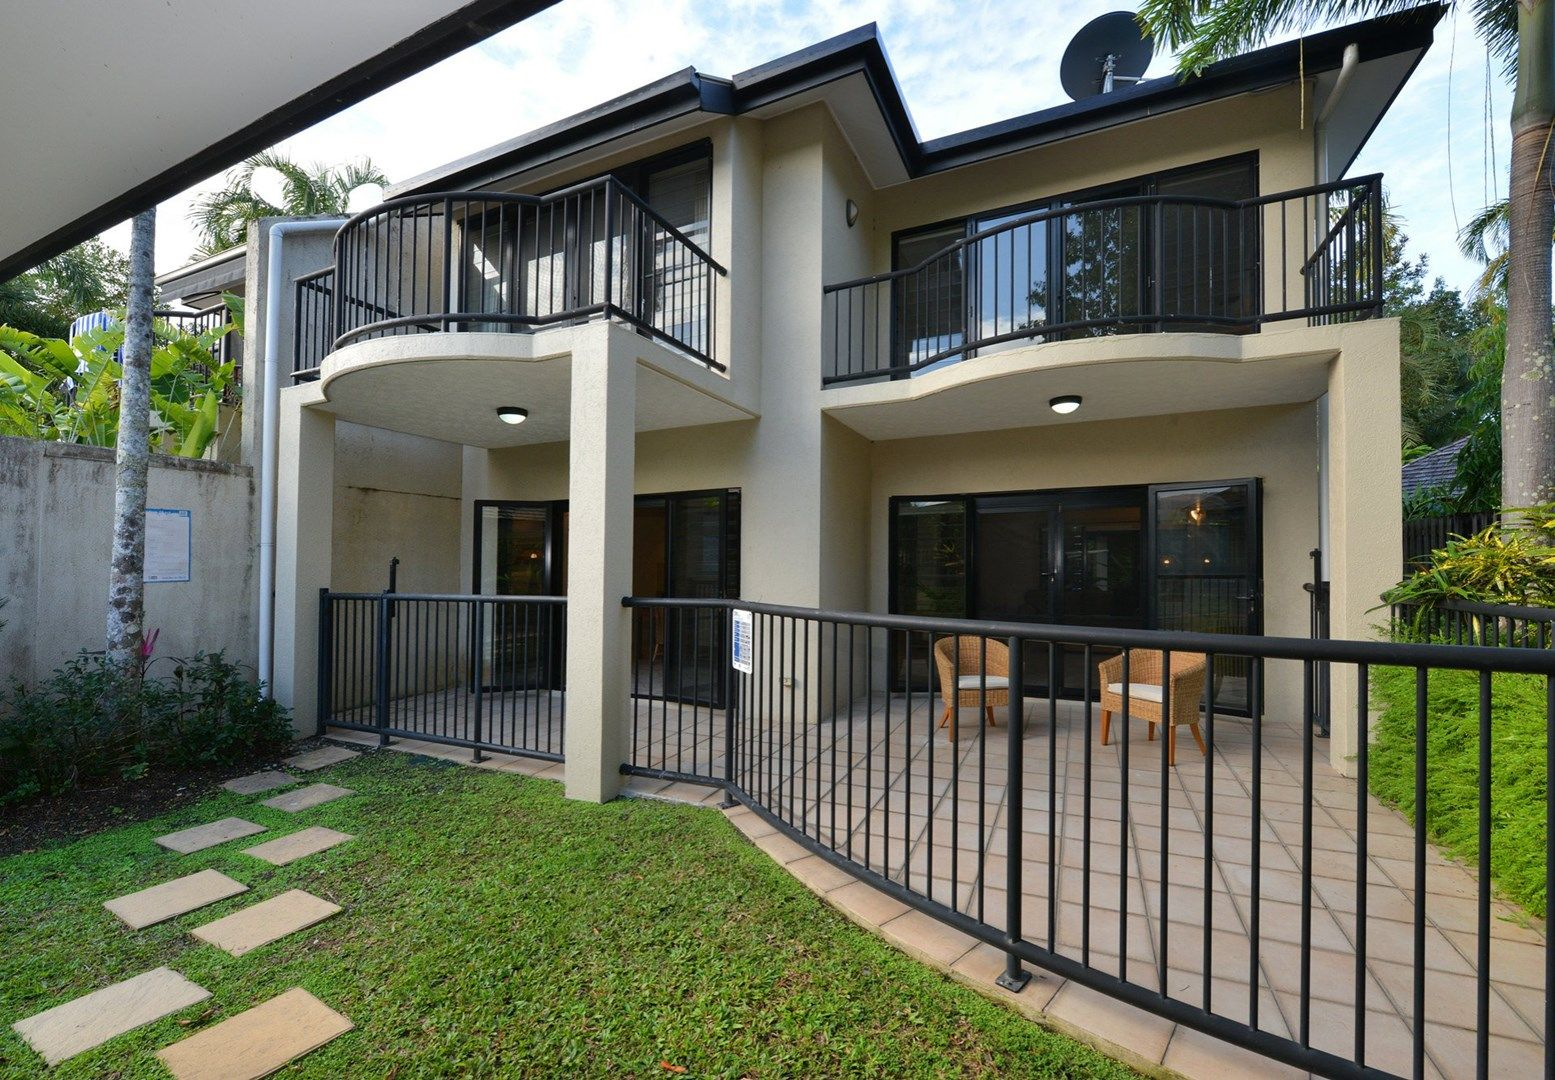 4 Thorntons West/11-17 St Crispins Avenue, Port Douglas QLD 4877, Image 1